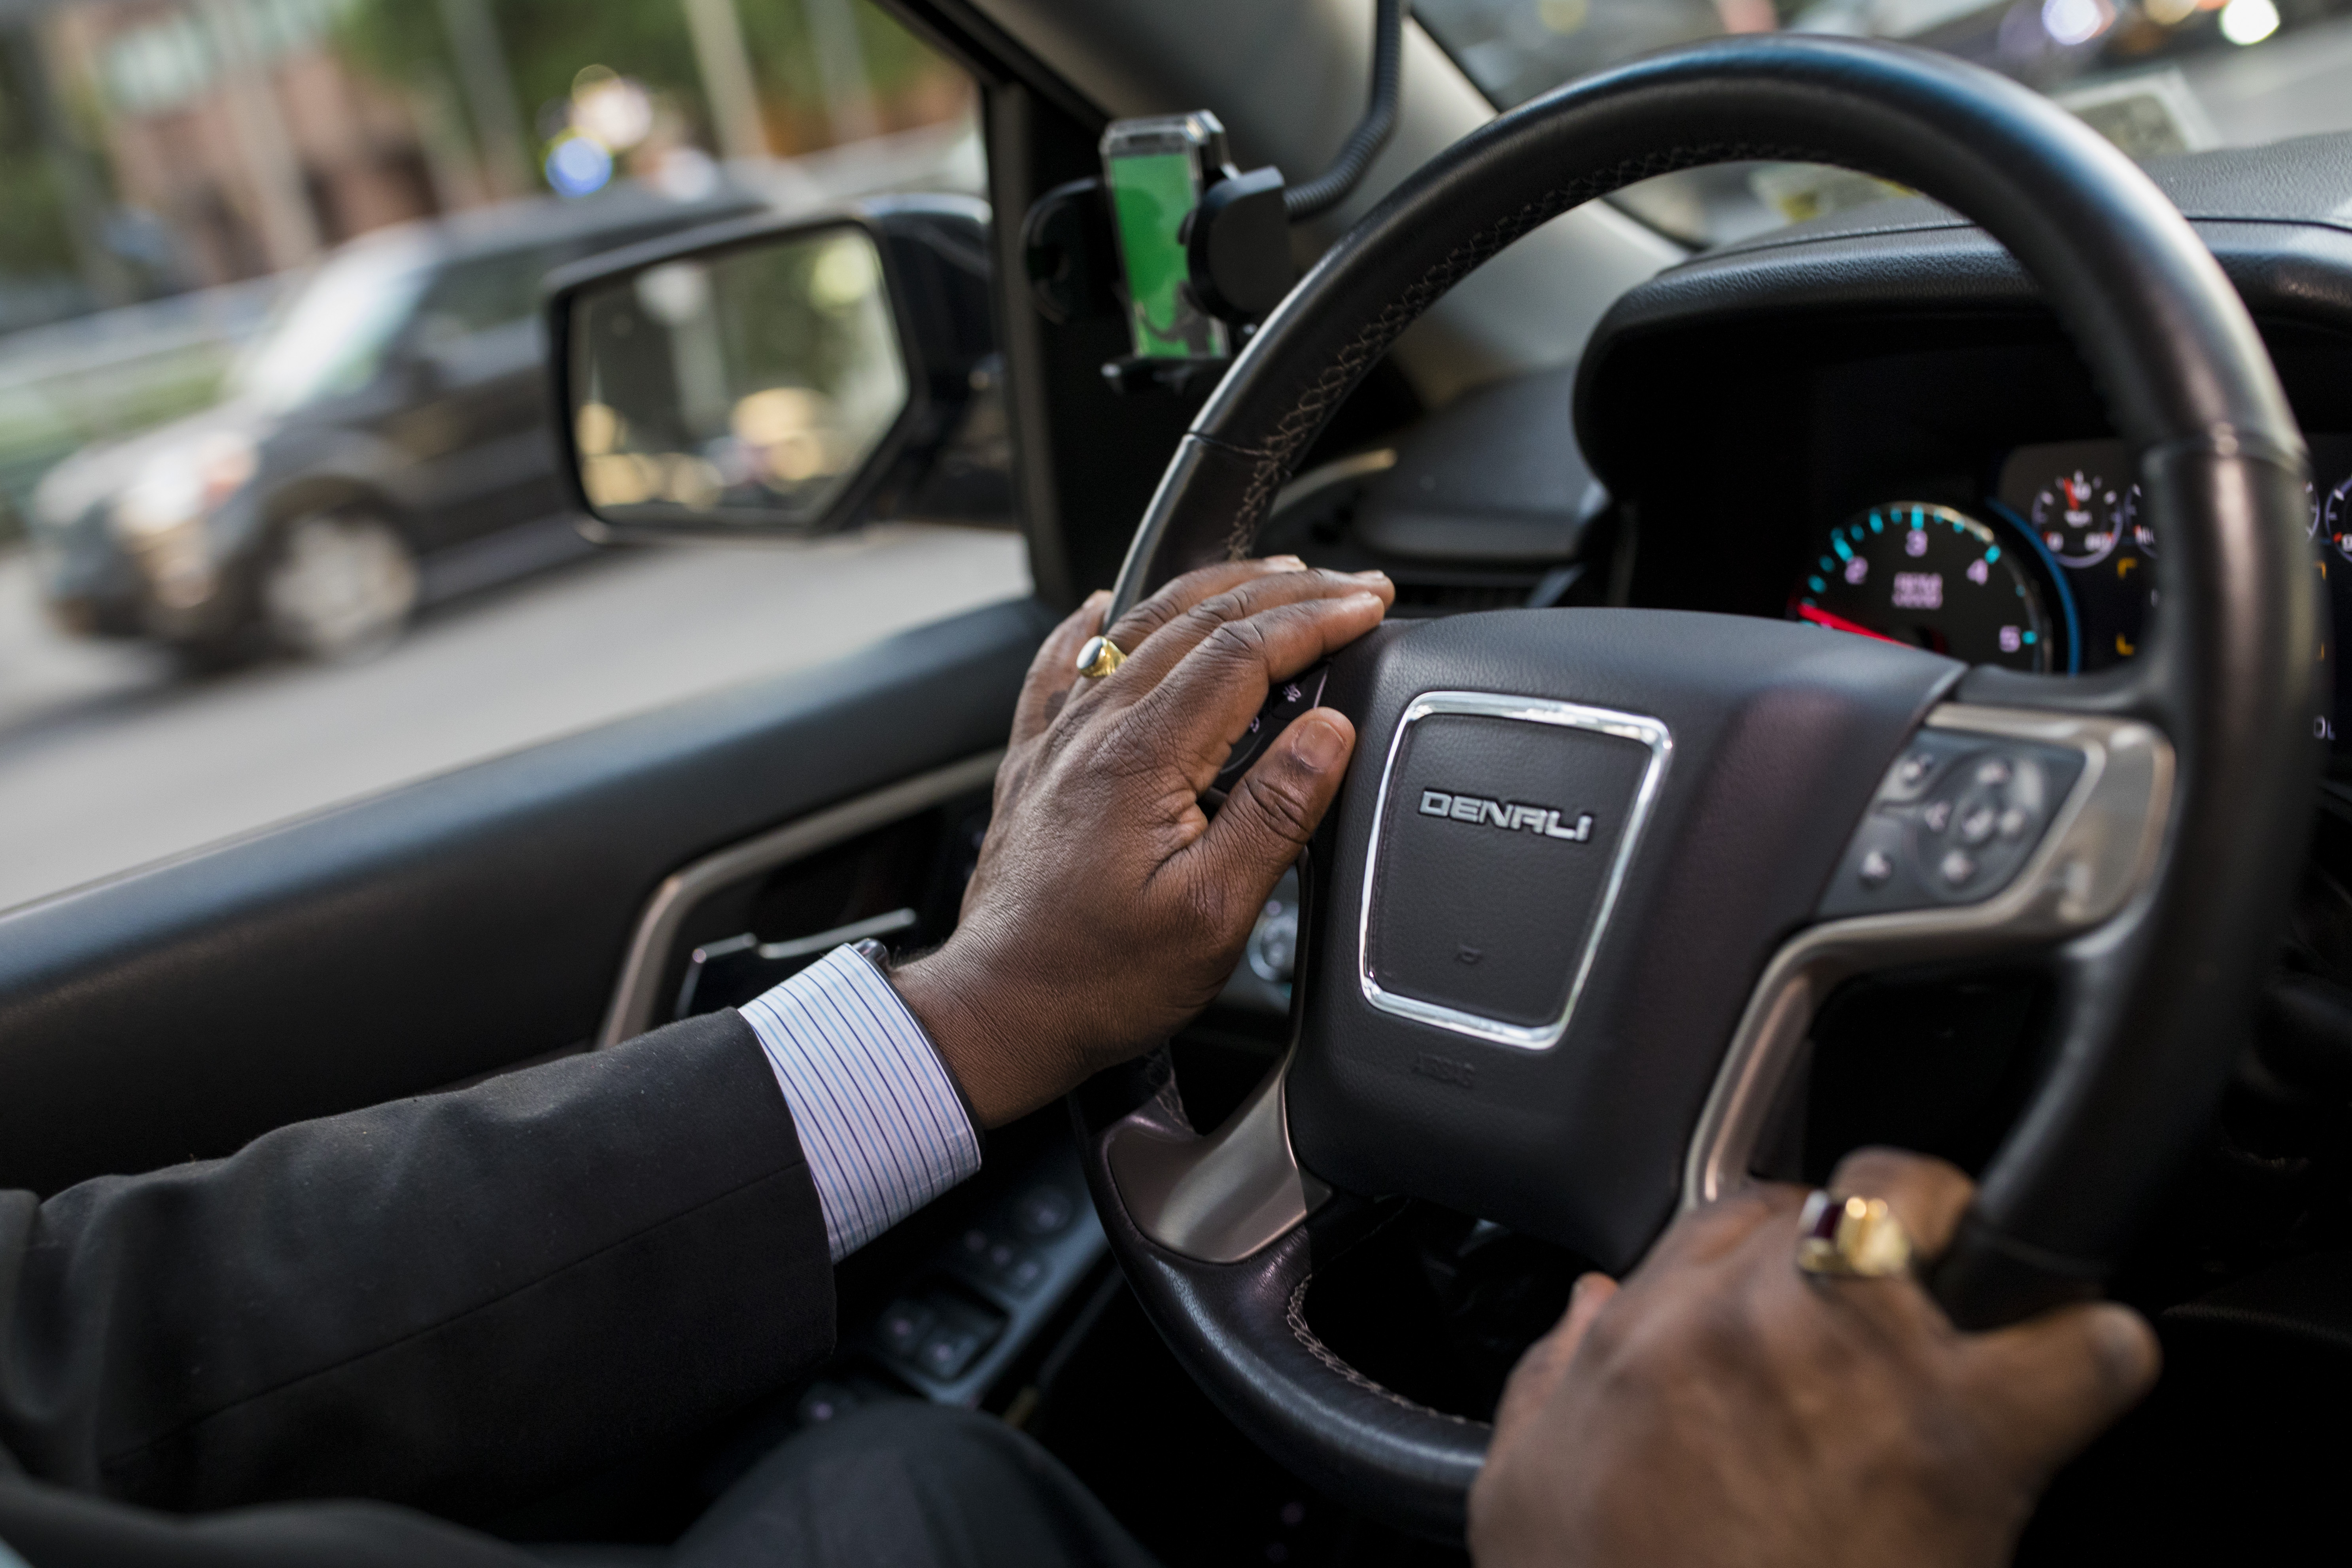 A man's hands on the steering wheel of a car